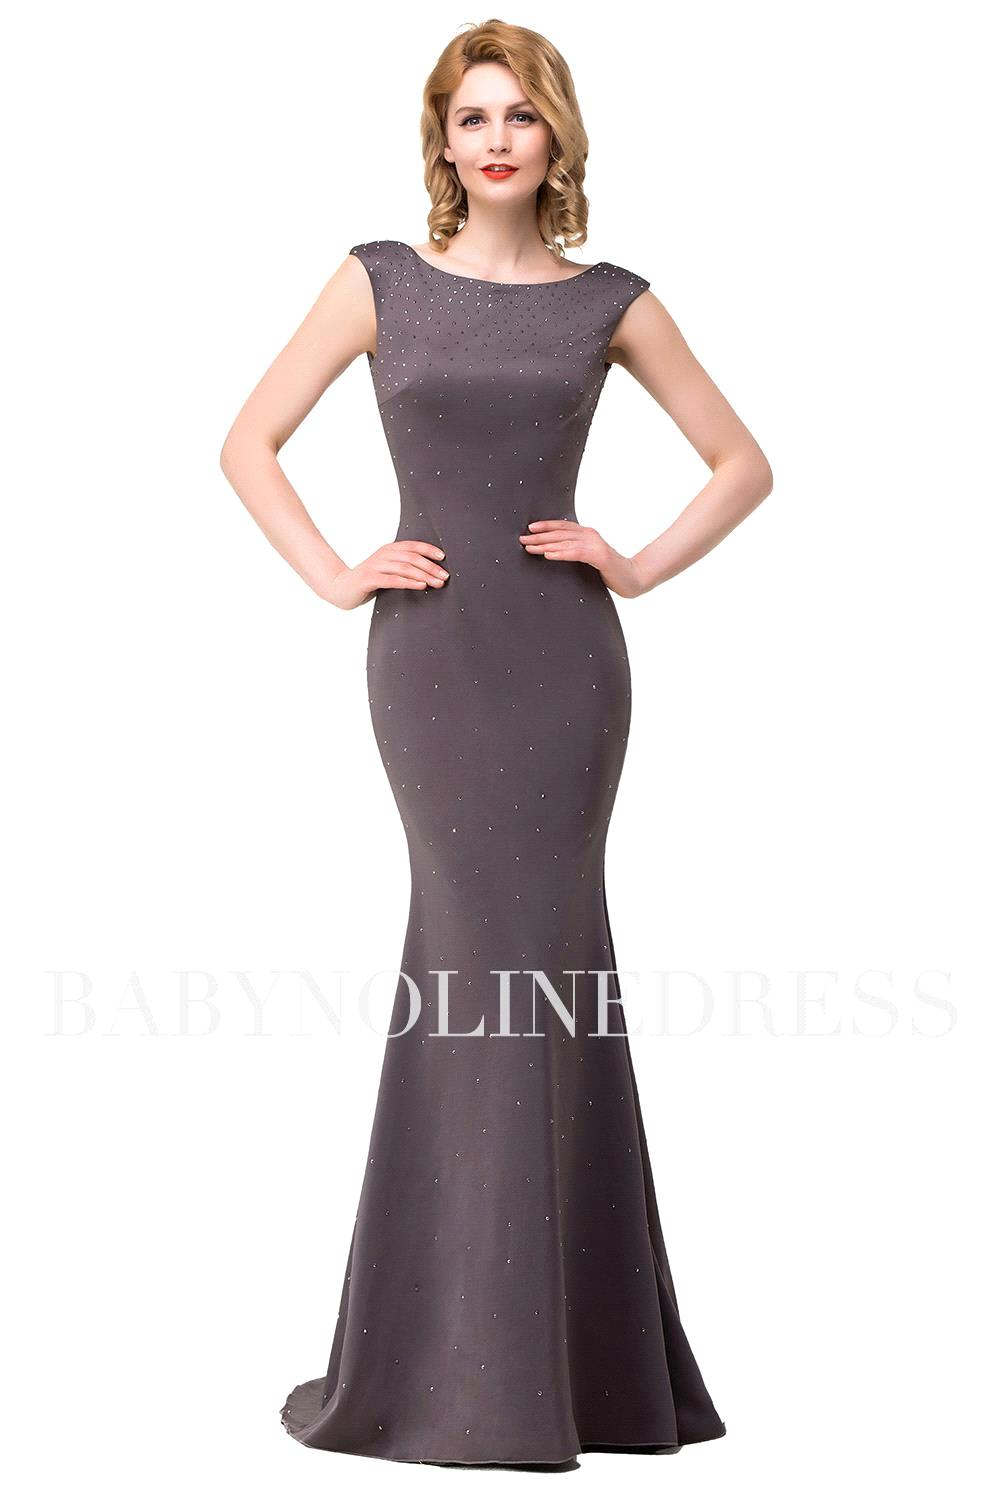 Compare Prices on Elegant Evening Gowns Cheap- Online Shopping/Buy ...